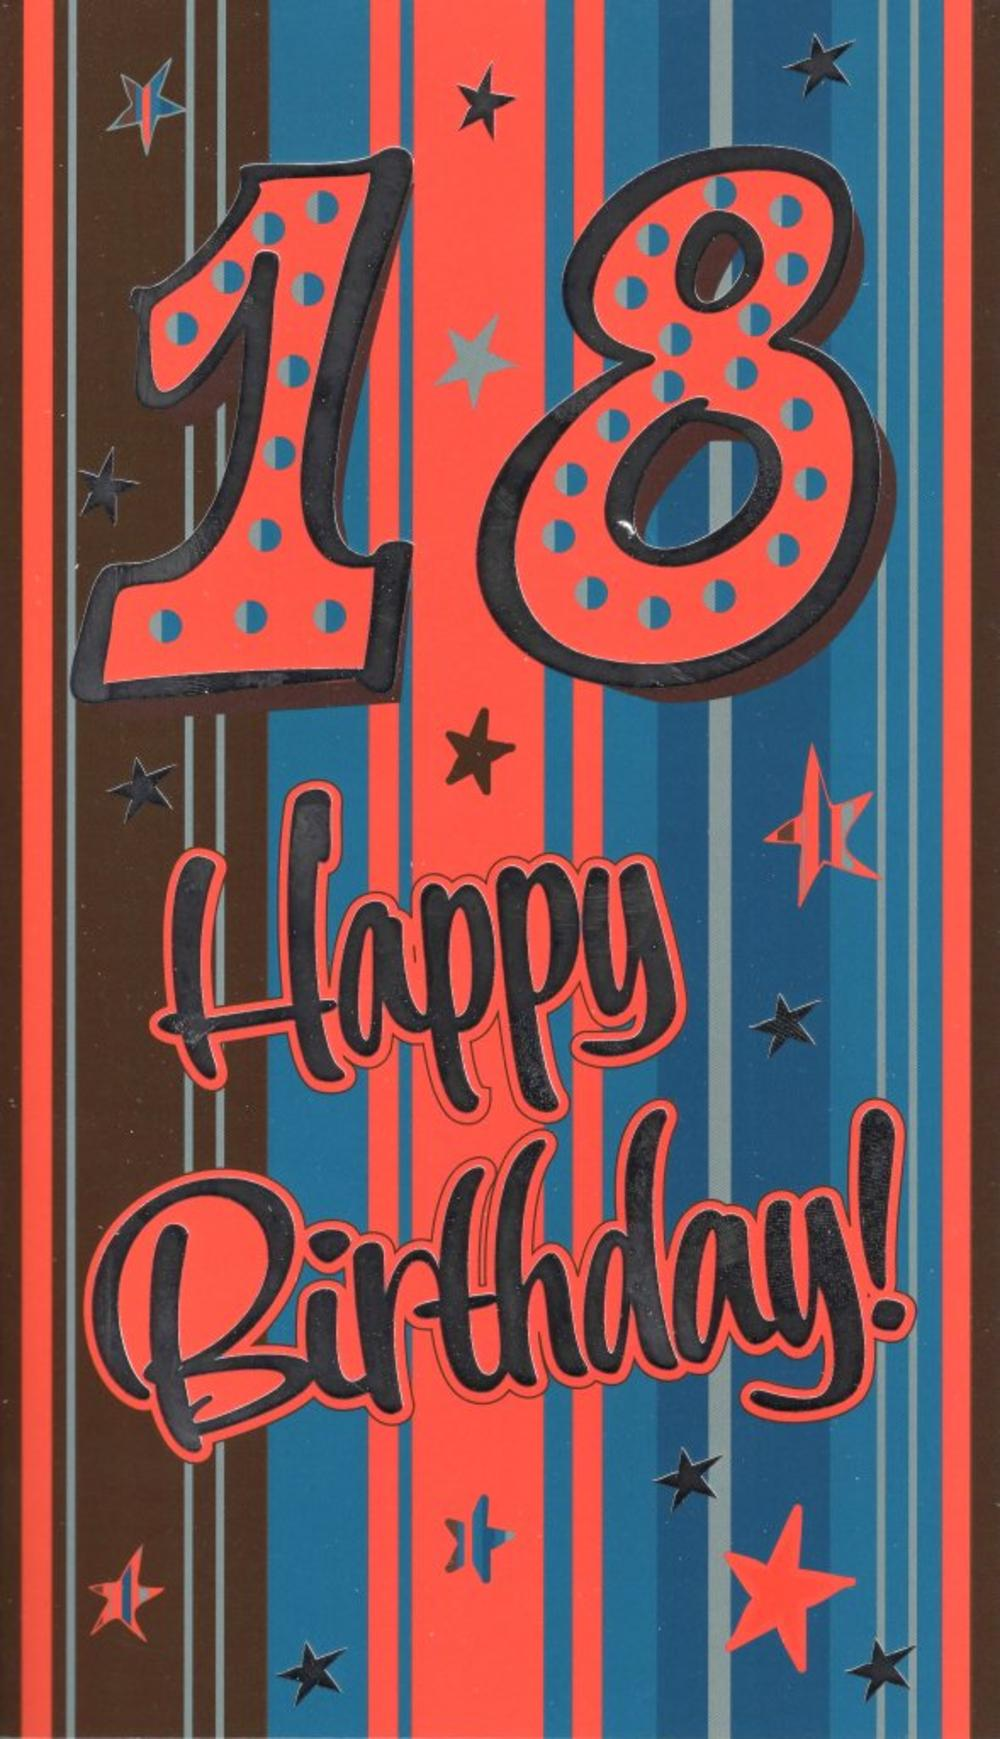 Large 18th Happy Birthday Card Male